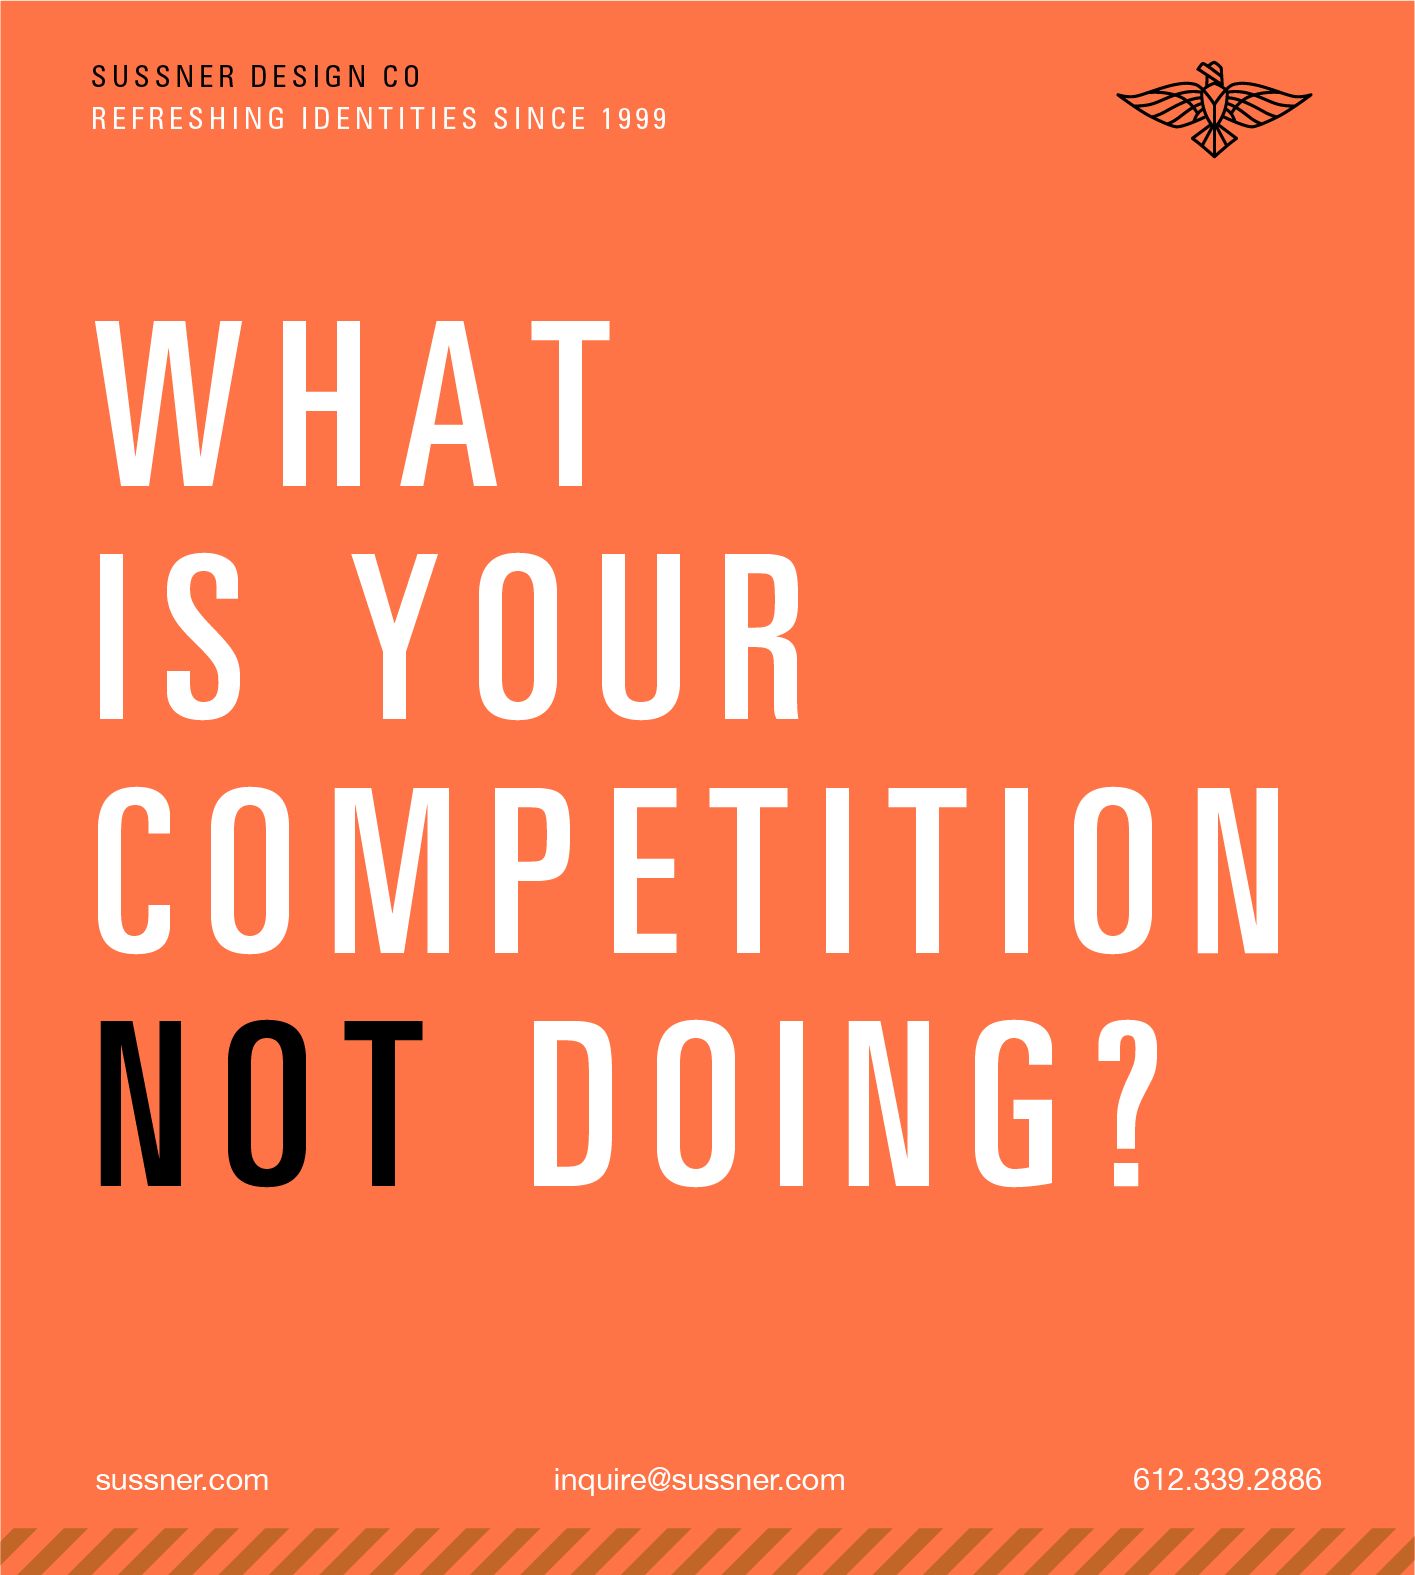 What is your competition NOT doing?